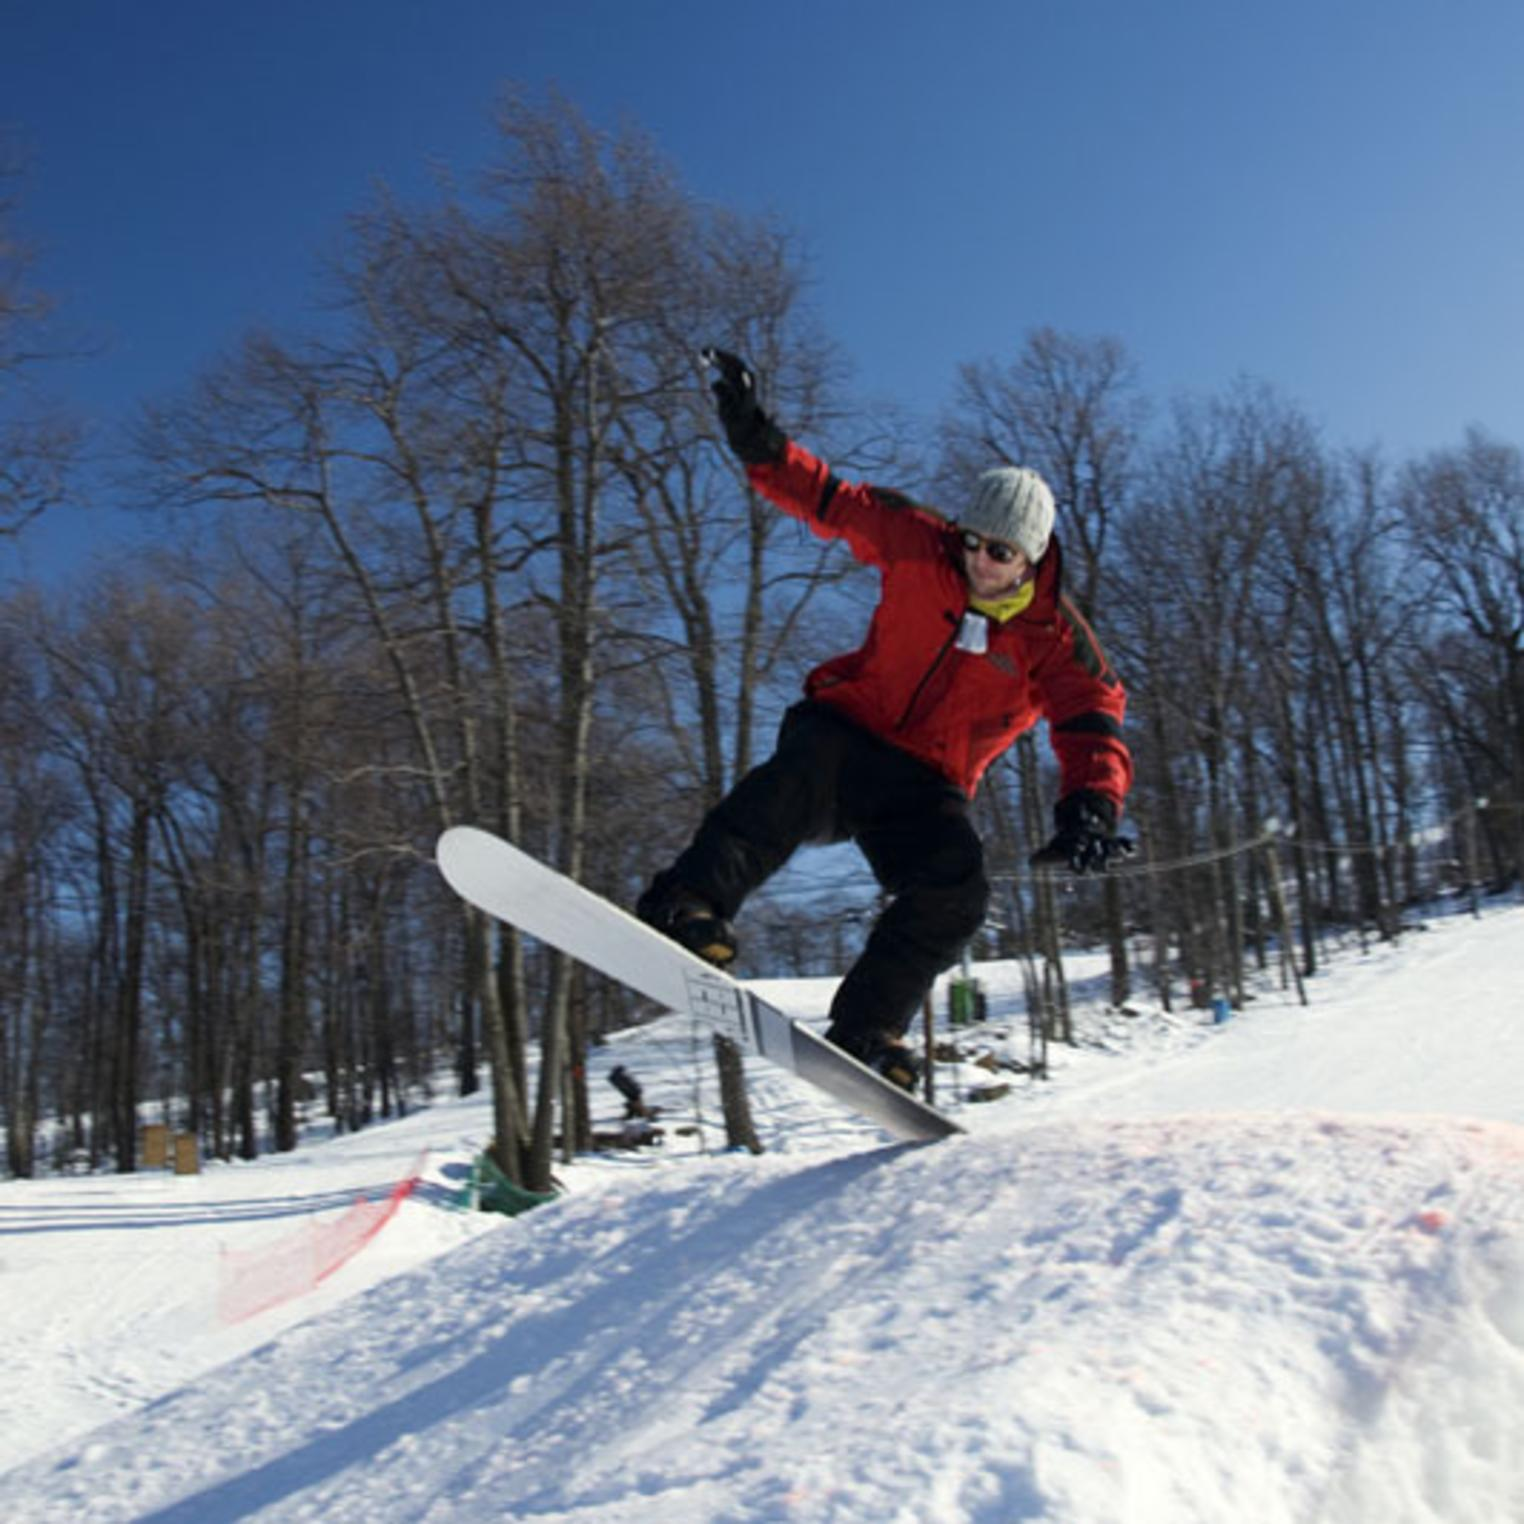 Snowboarding at Roundtop Mountain Resort - Lessons for all ages and abilities